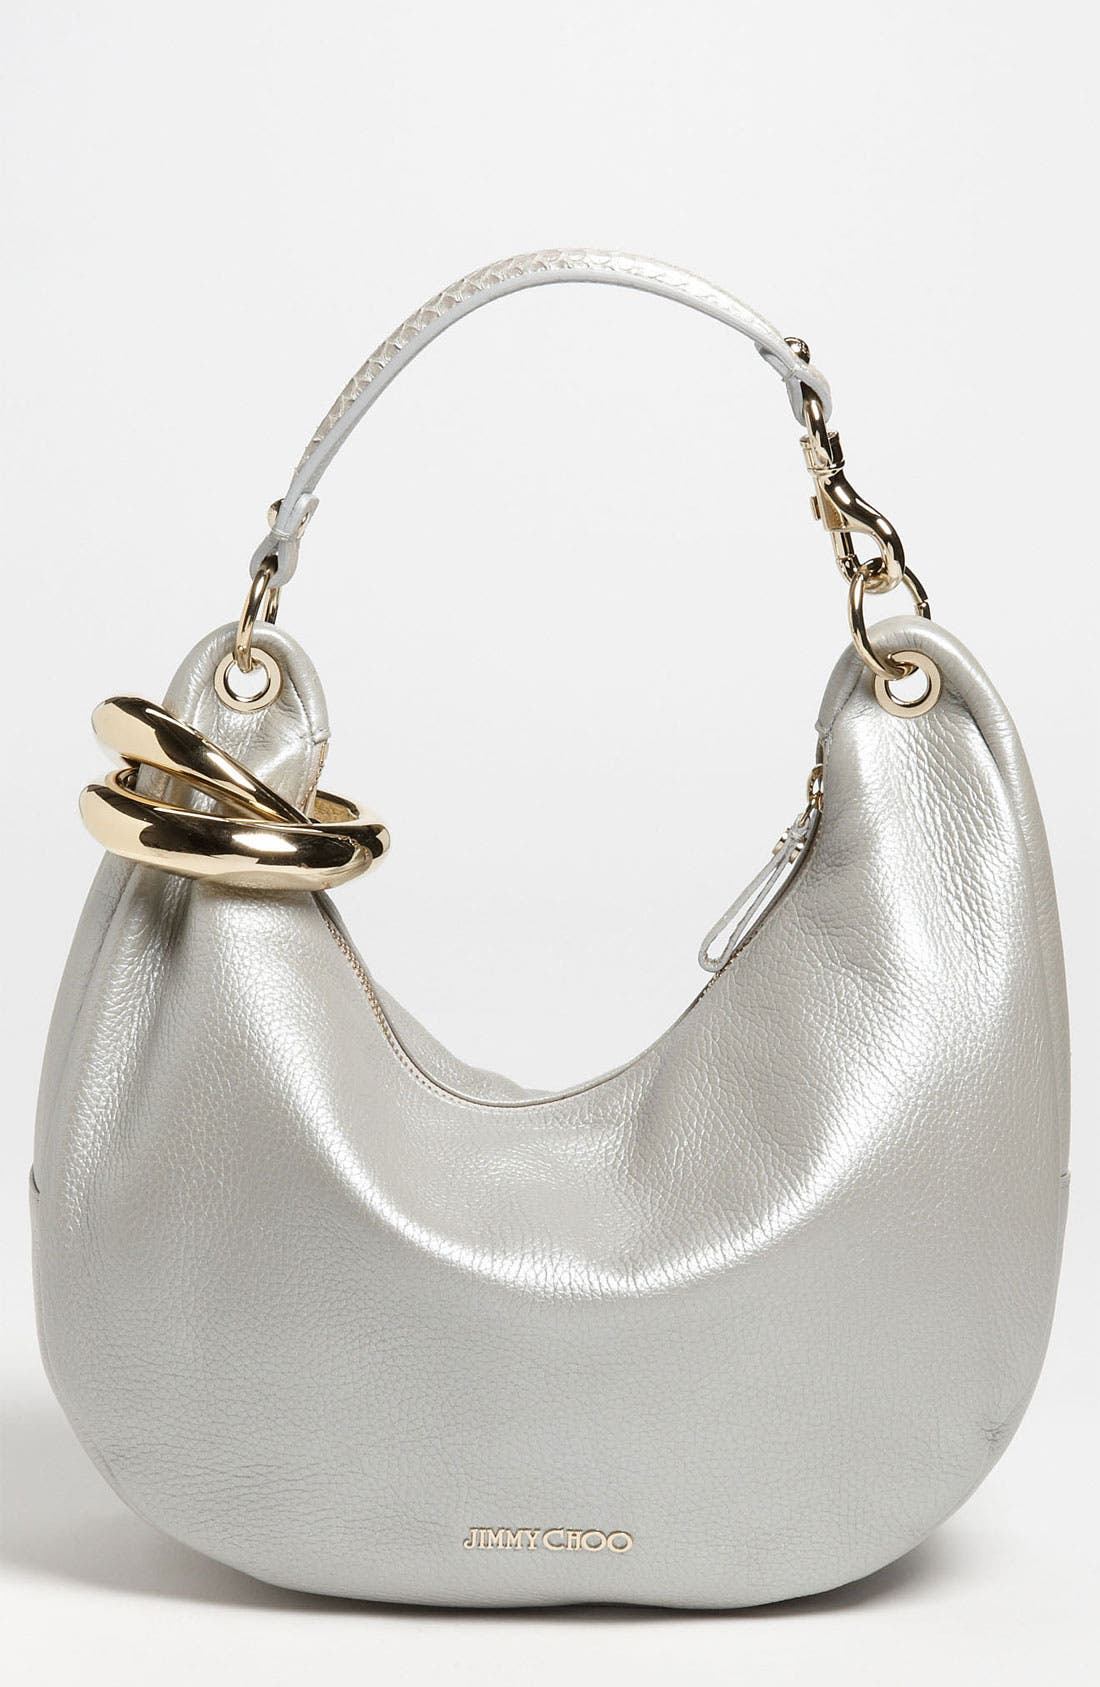 Alternate Image 1 Selected - Jimmy Choo 'Solar - Small' Pearlized Metallic Leather Hobo